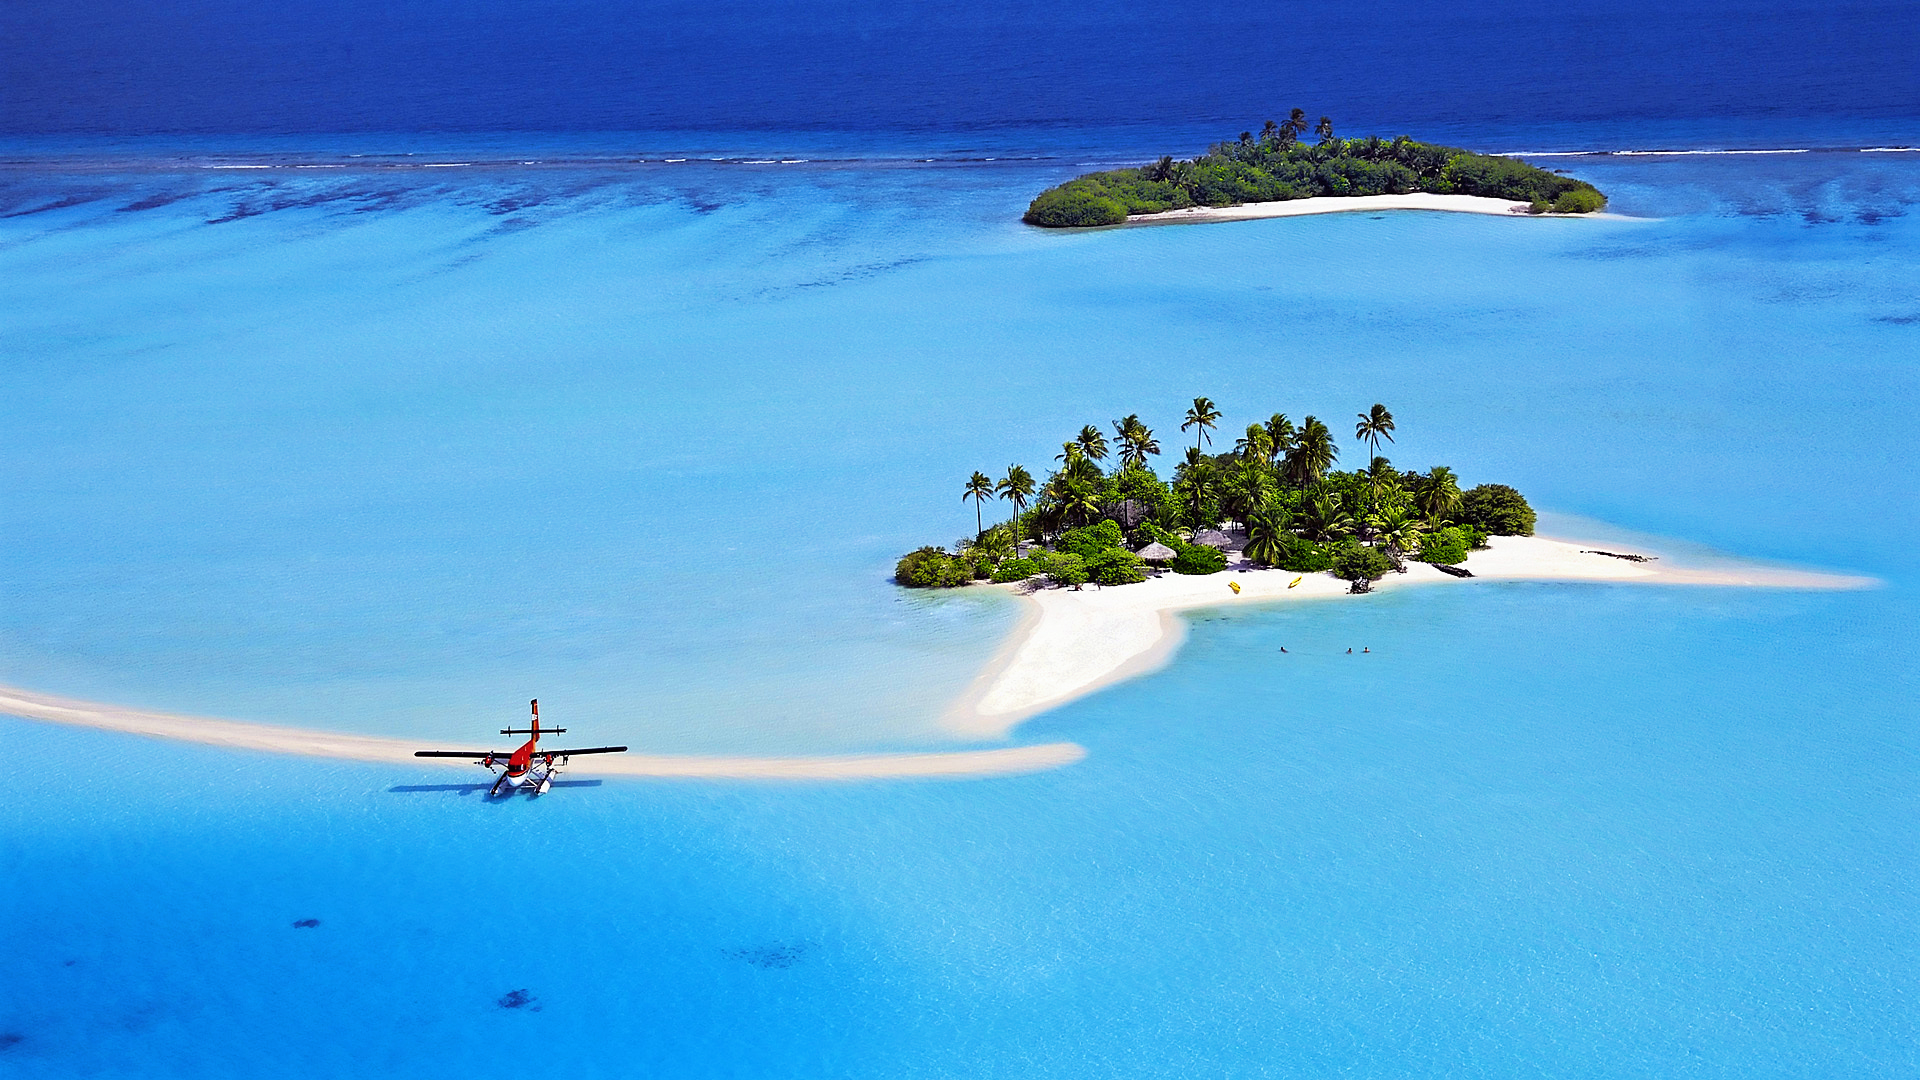 most expensive islands in the world top 5 with prices that are still up for sale today